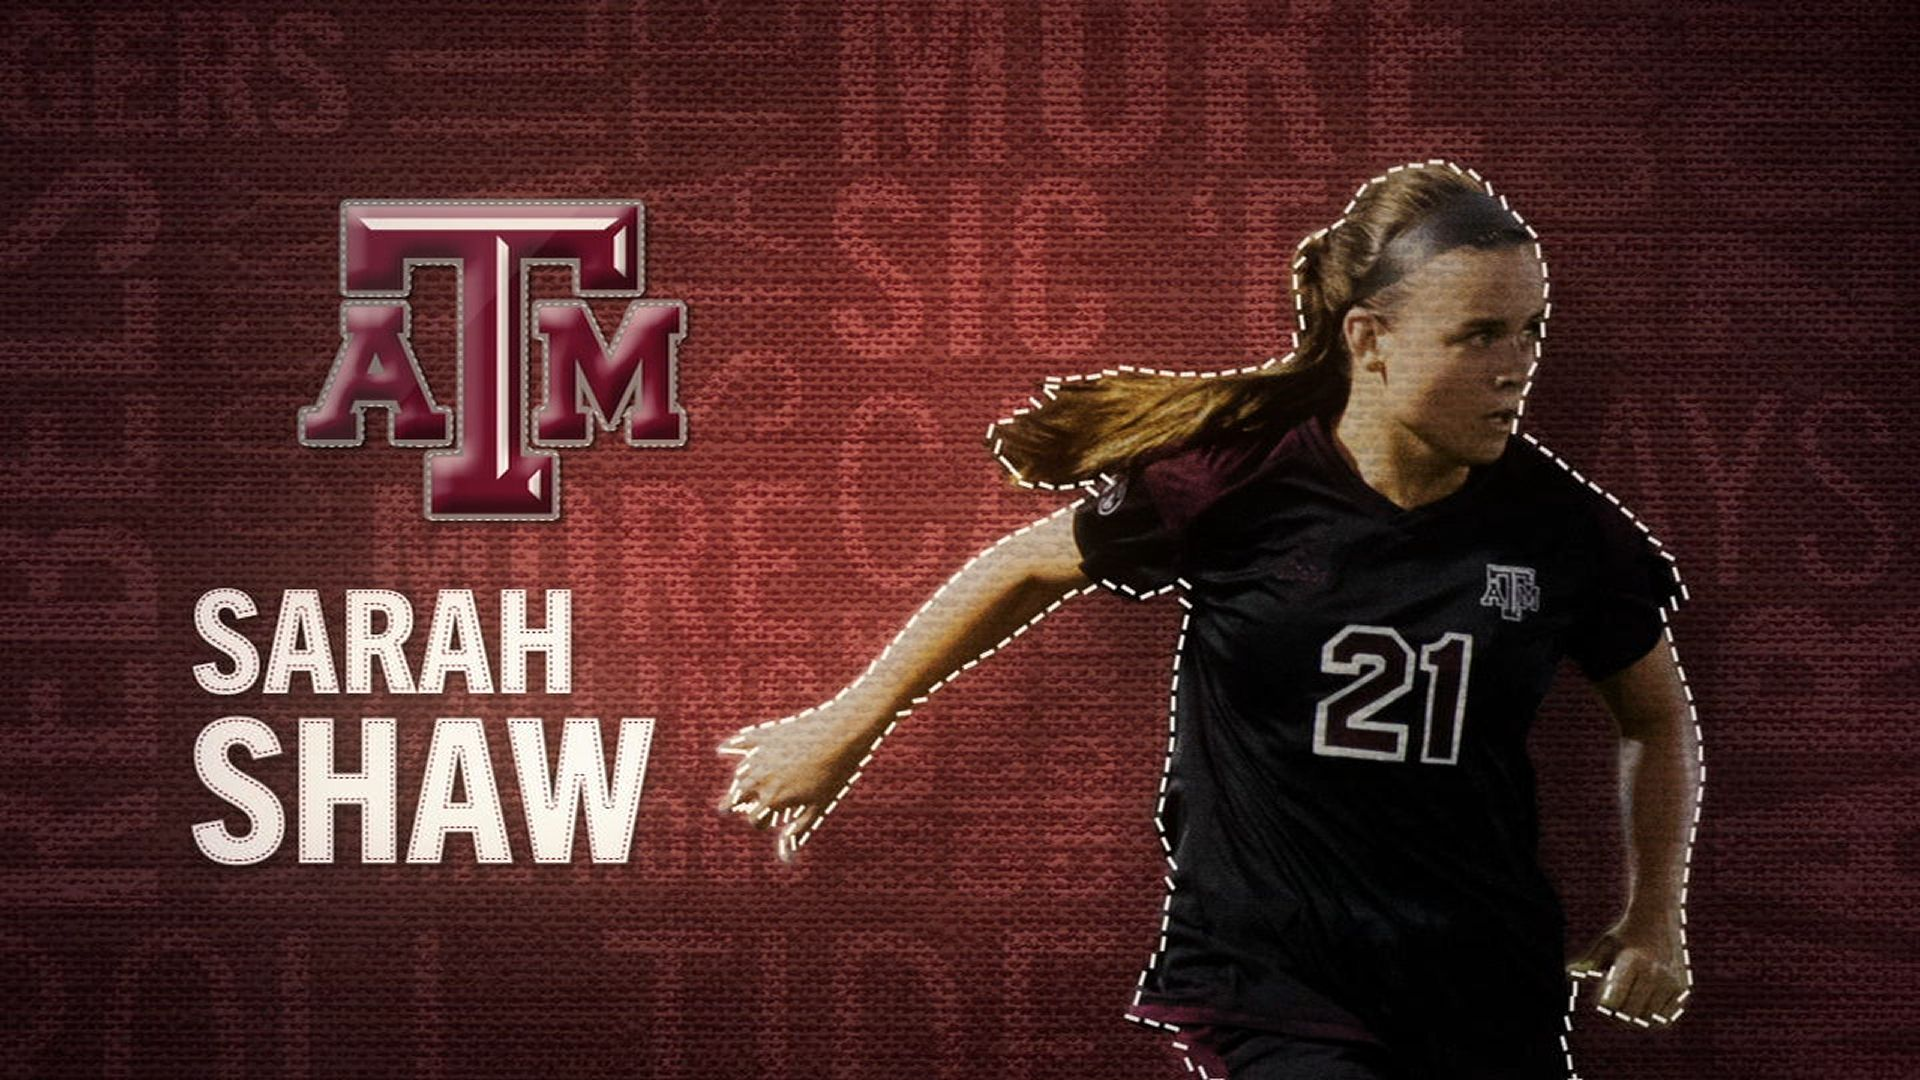 I am the SEC: Texas A&M's Sarah Shaw